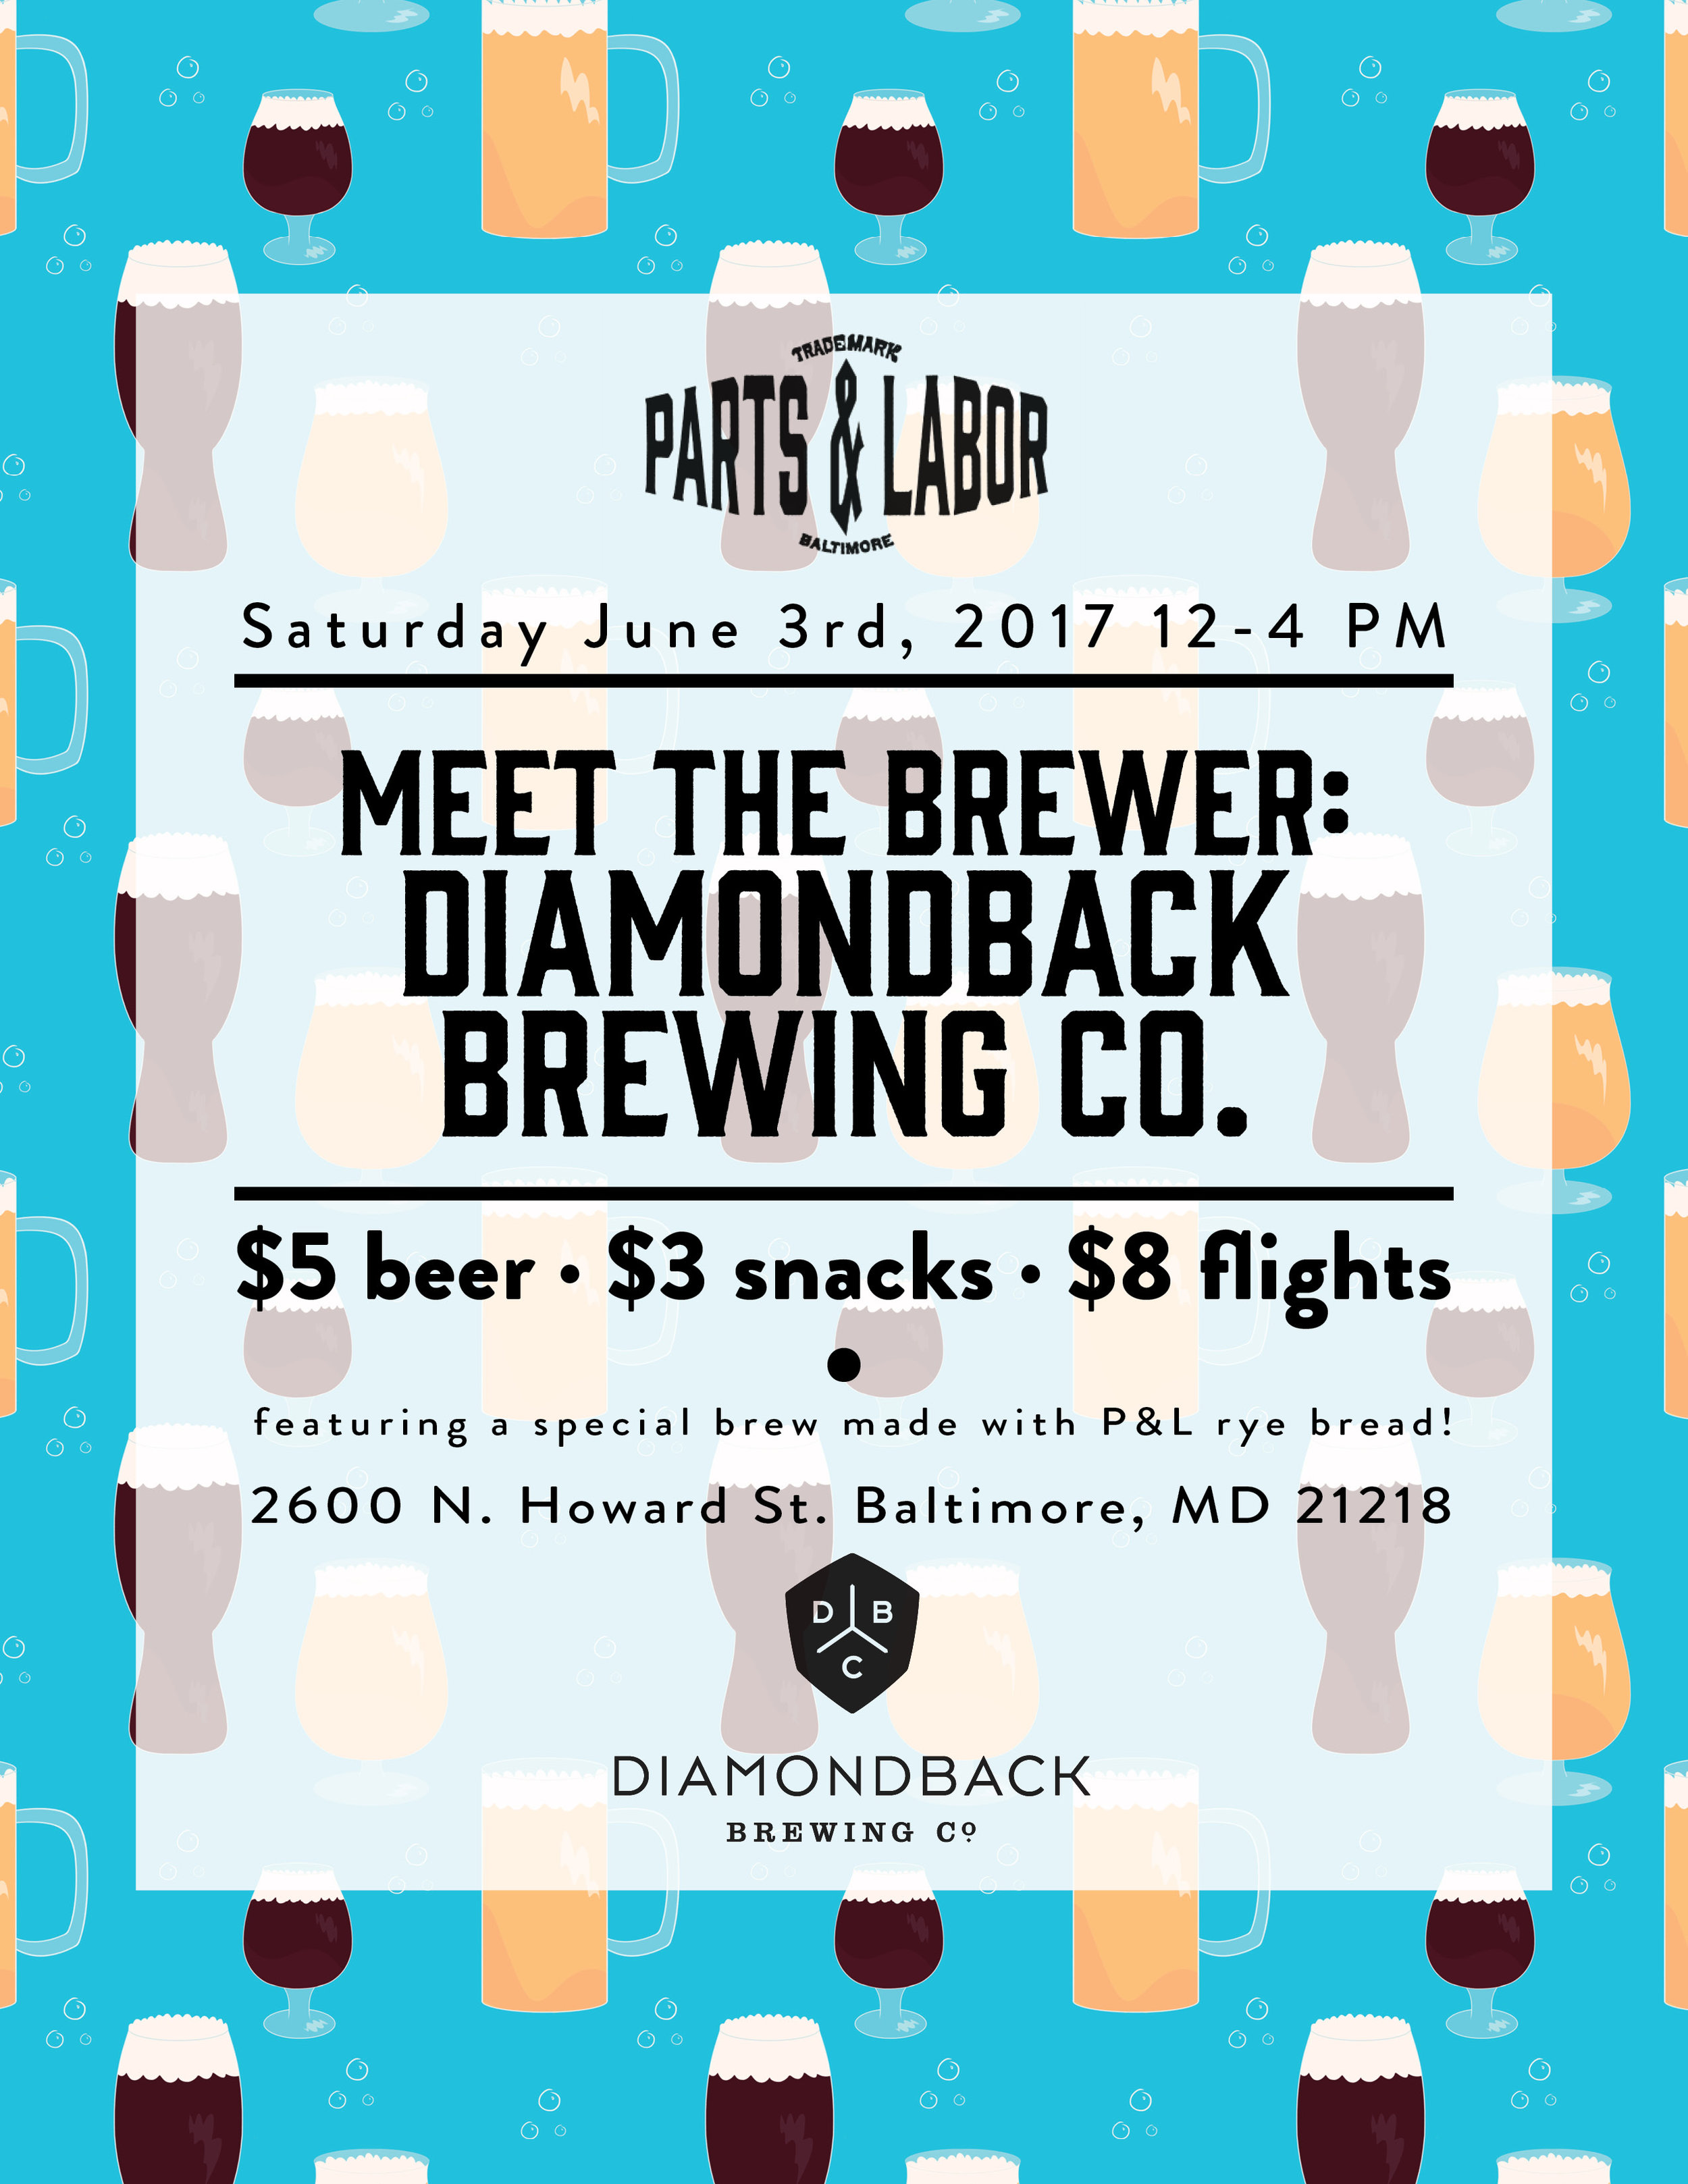 Flyer for Parts & Labor and Diamondback Brewing Company   Pattern and Design